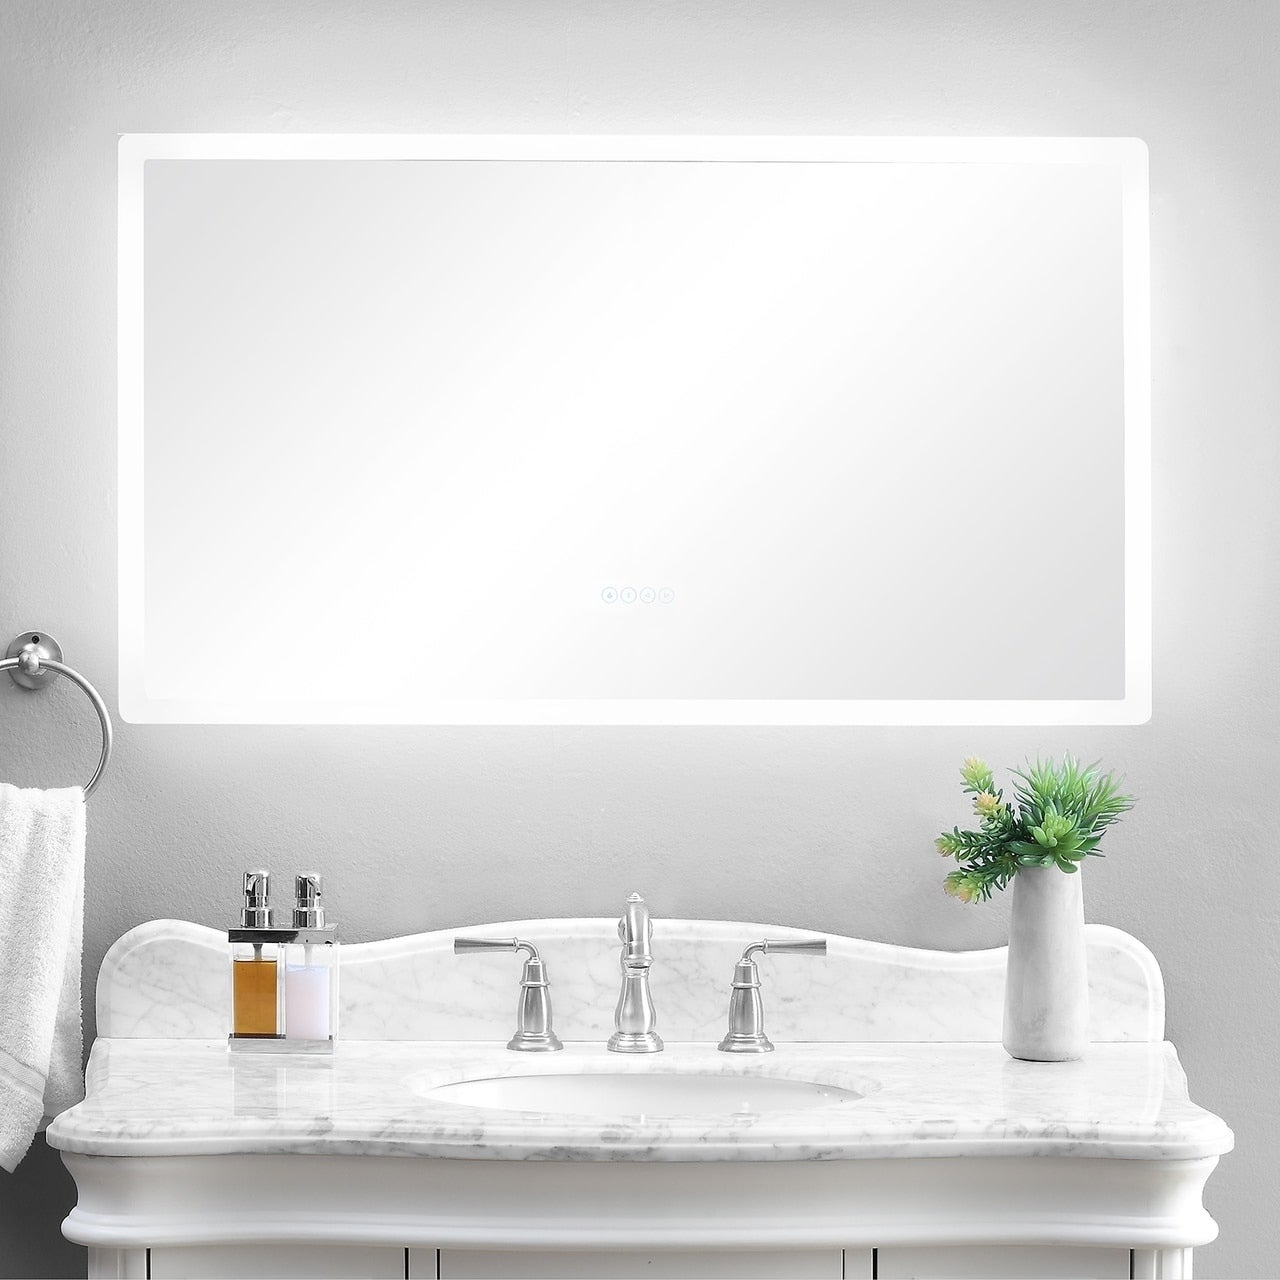 Bathroom Bluetooth Speaker | Smartled Illuminated Fog Free Bathroom Mirror With Built In Bluetooth Speakers And Dimmer 48 X 27